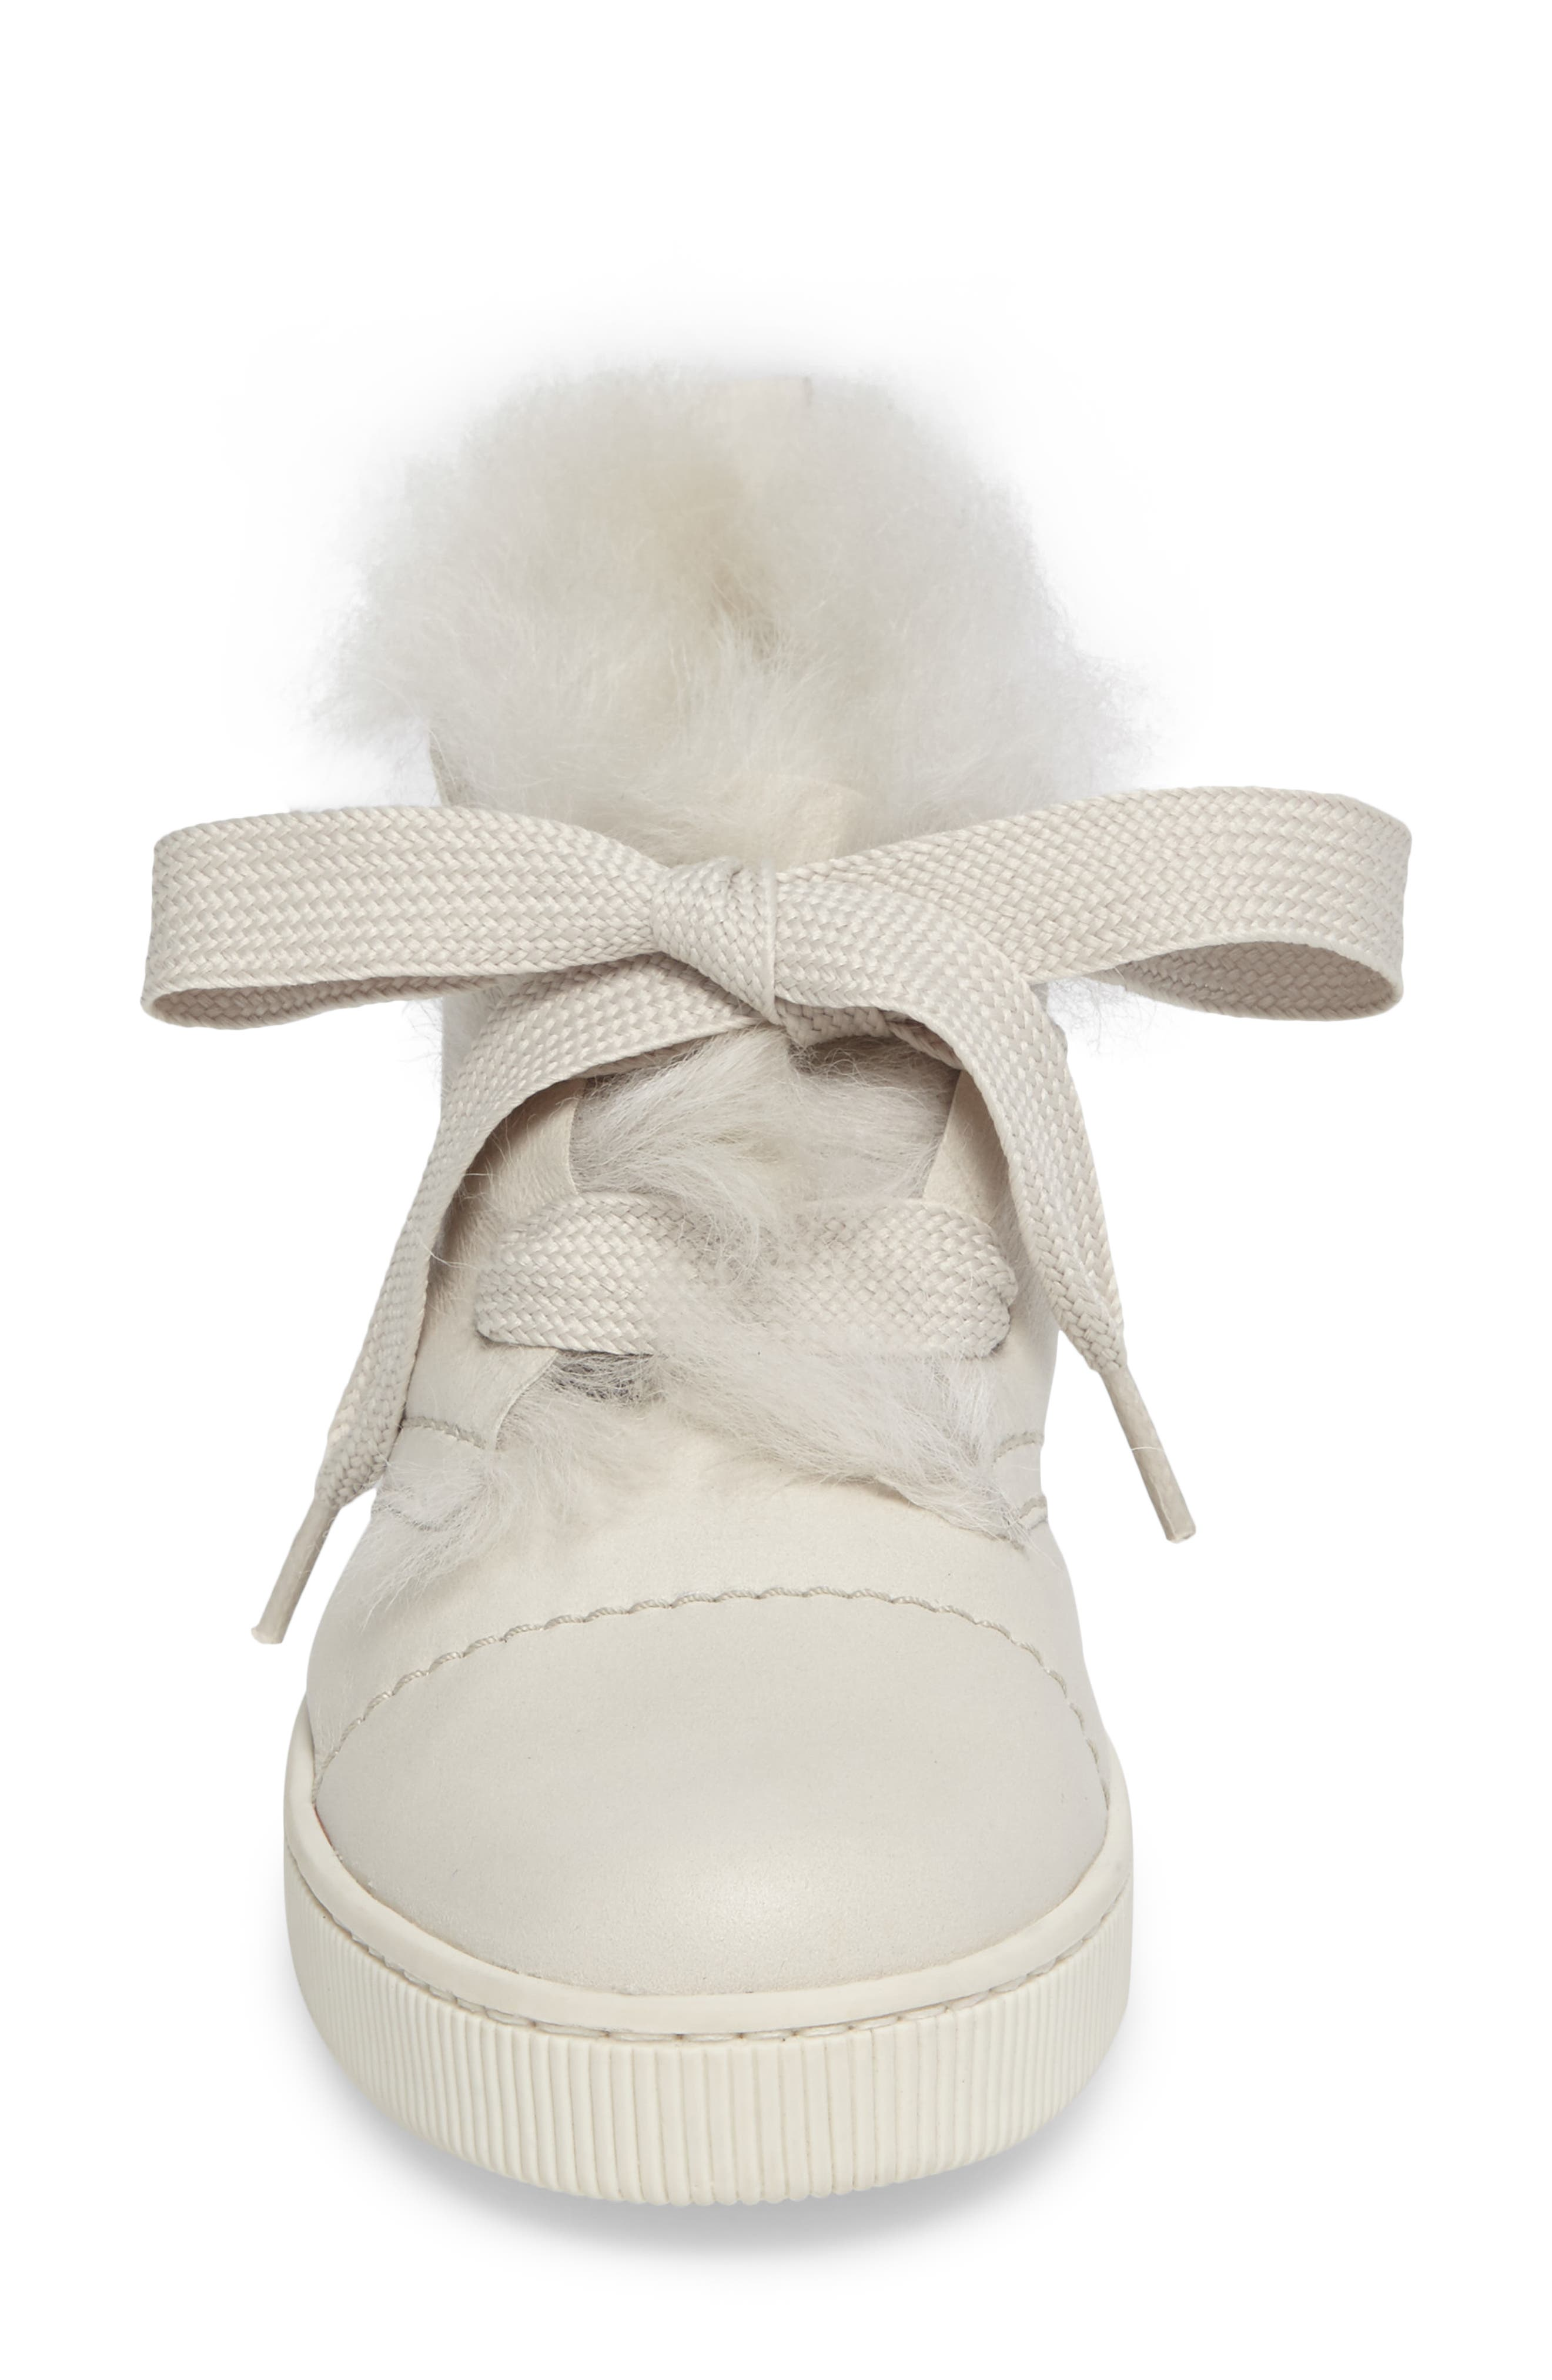 Parley Genuine Shearling & Leather Sneaker,                             Alternate thumbnail 8, color,